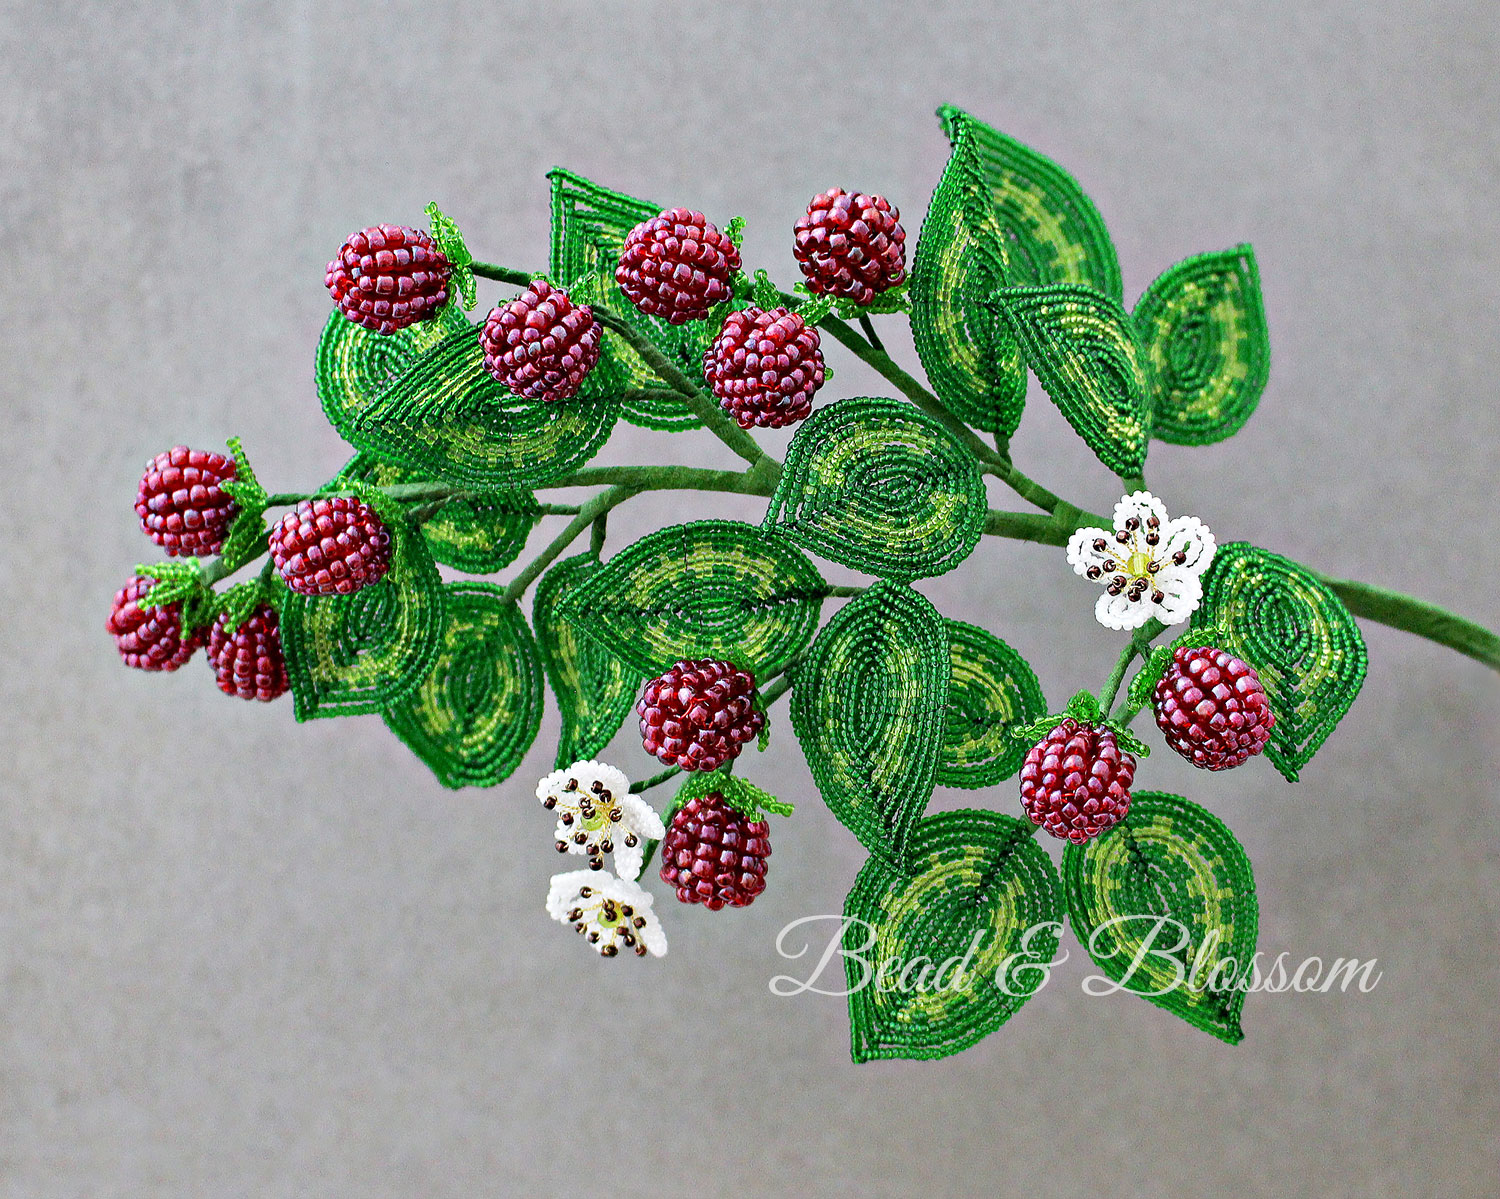 French Beaded Raspberry master class by Lauren Harpster and Suzanne Steffenson